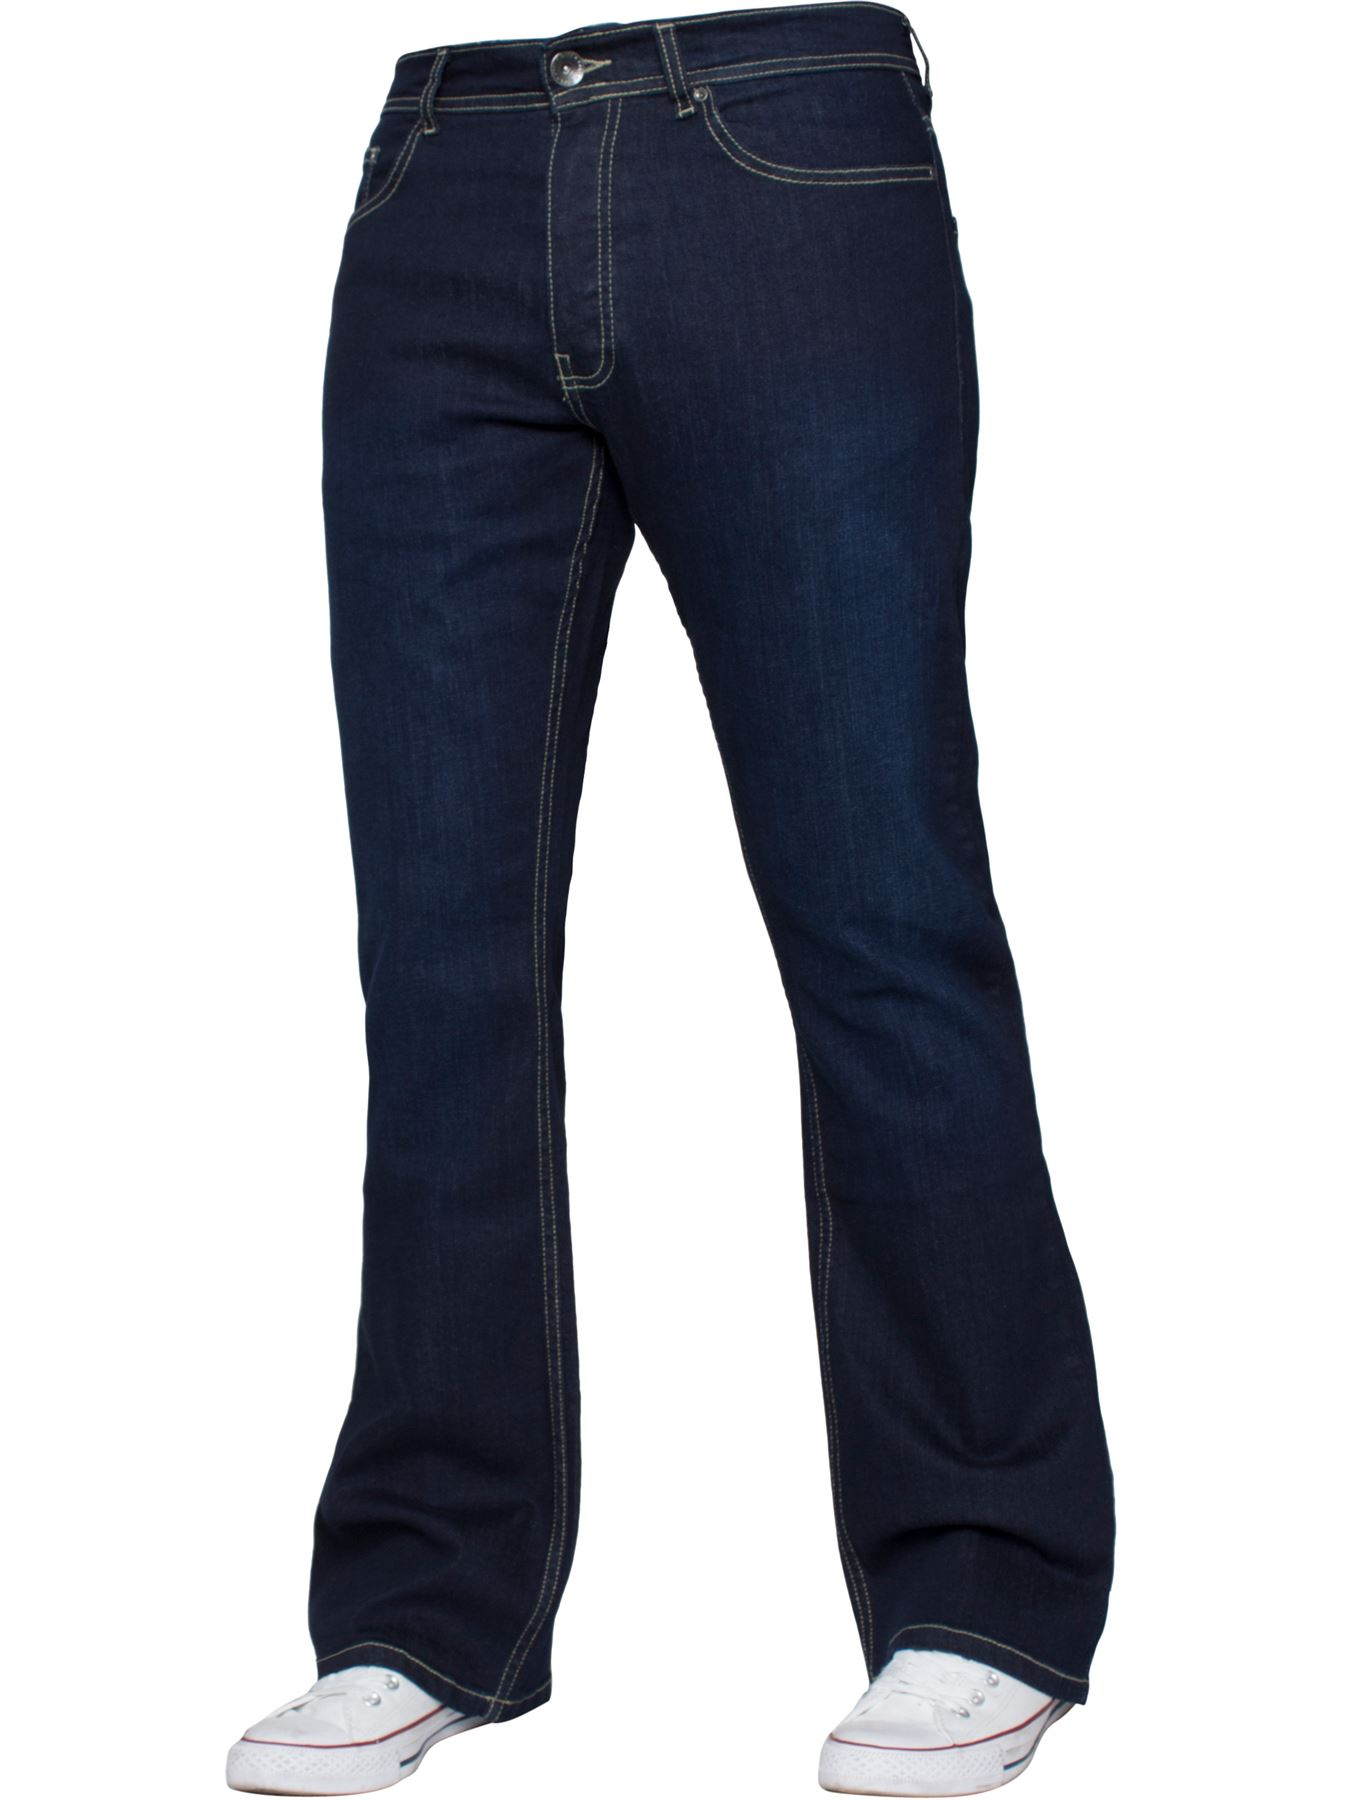 Kruze-Mens-Basic-Straight-Leg-Bootcut-Stretch-Jeans-Denim-Regular-Big-Tall-Waist thumbnail 55